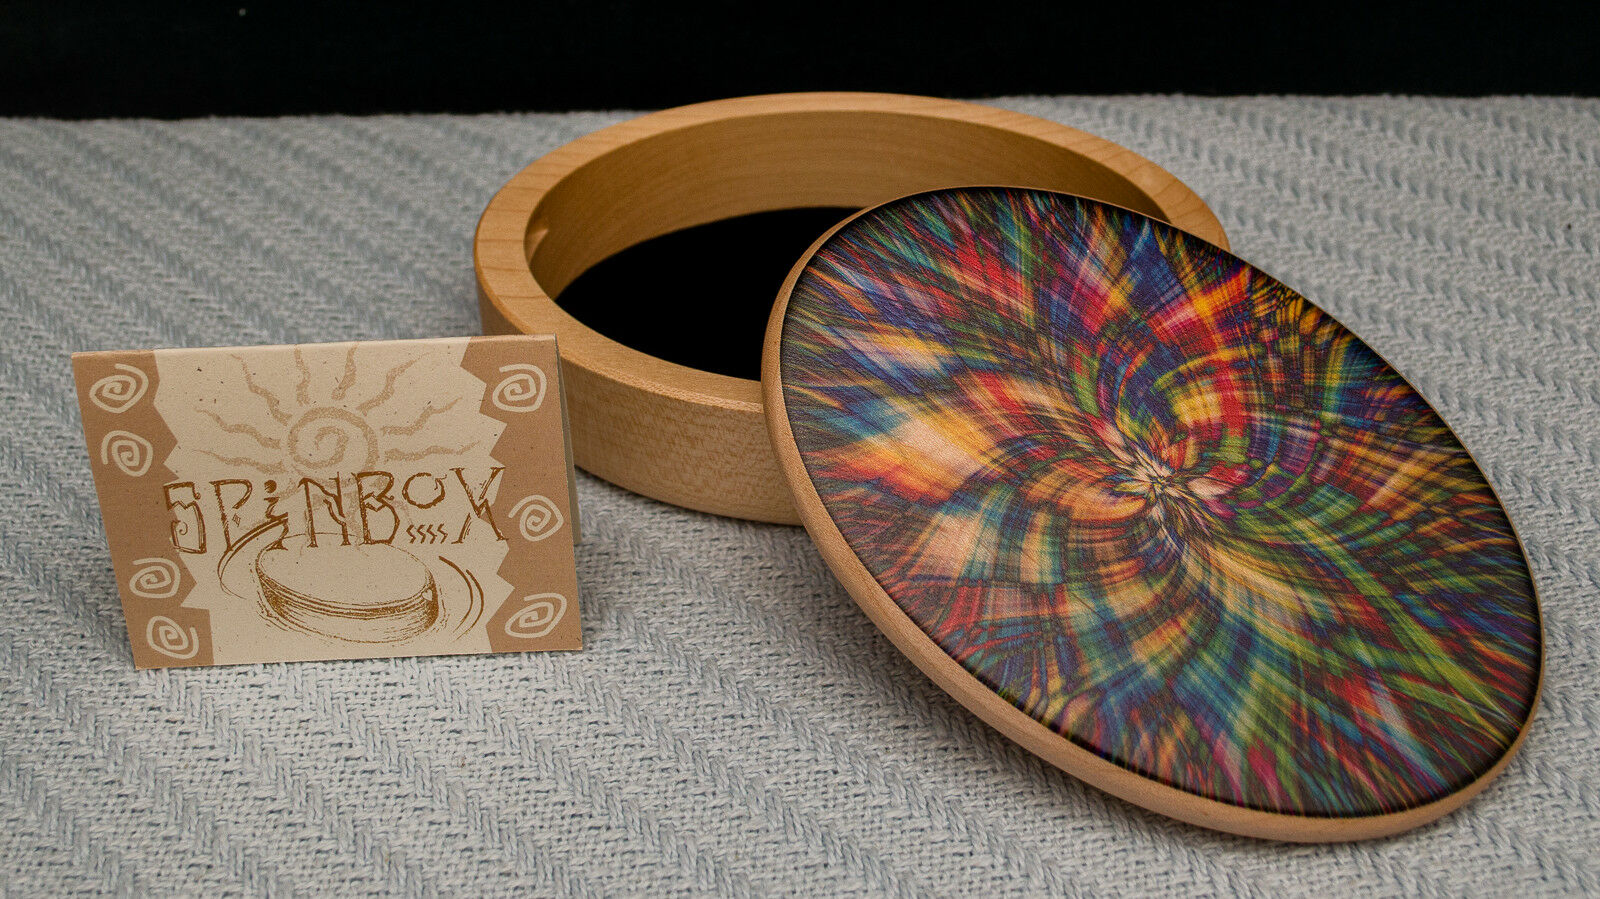 Made-in-the-USA MapleWood Spin Puzzle Box w  Kaleidoscope color Art by Heartwood